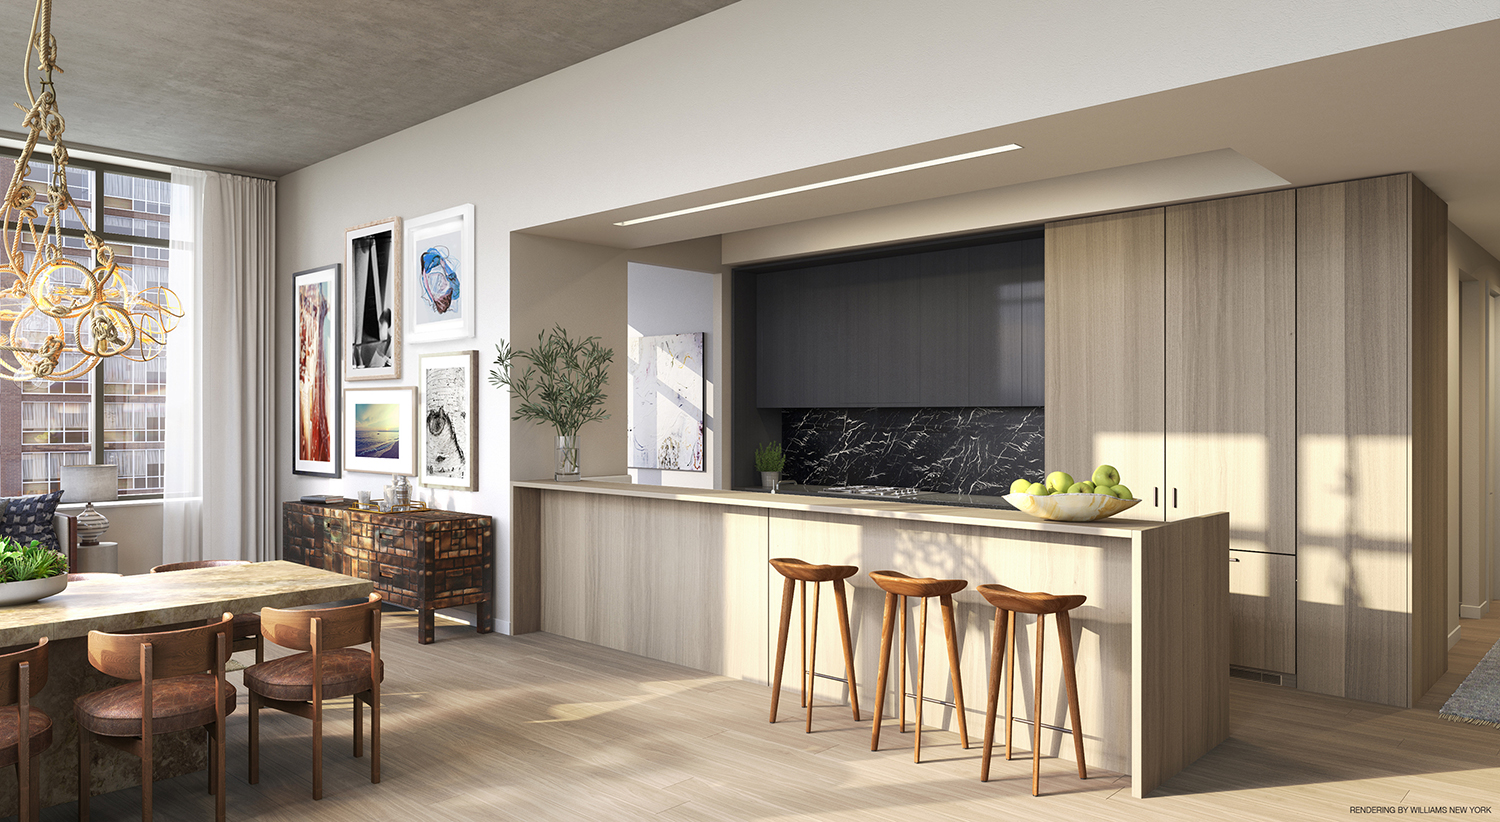 Rendering of a kitchen at 196 Orchard Street. Credit: Williams New York